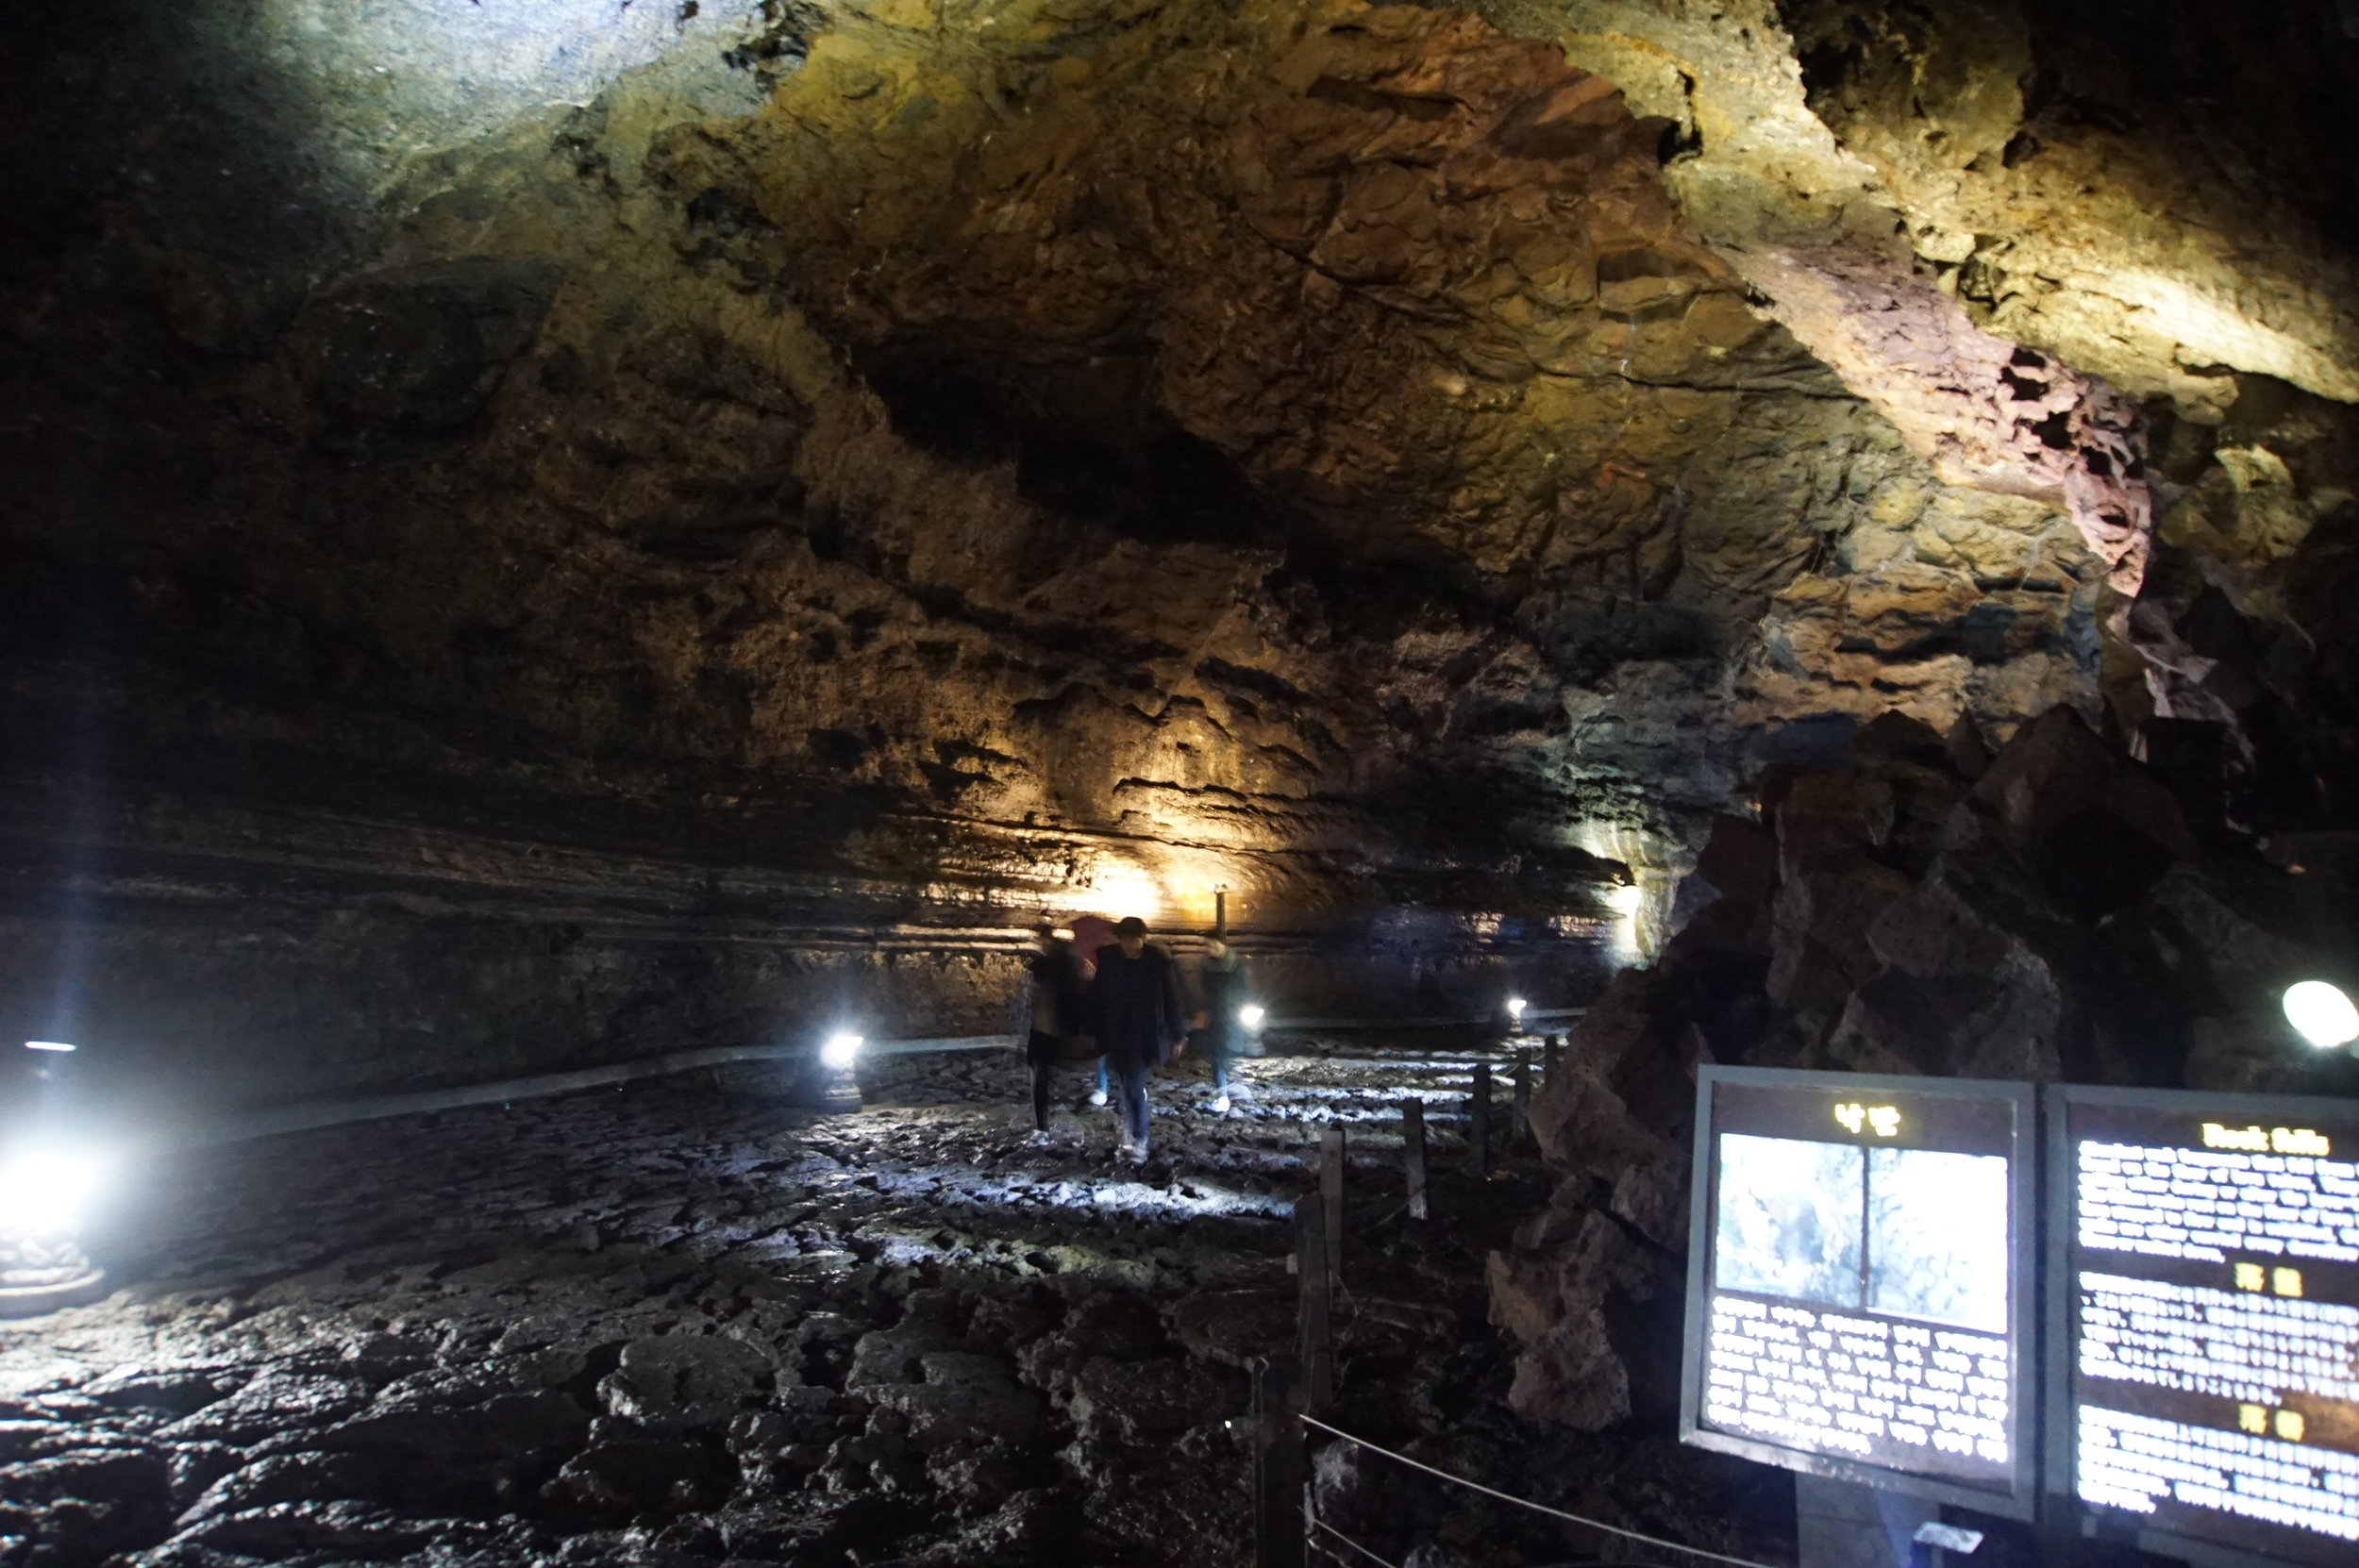 23 m tall and 18 m wide passage, check out the lava column on the right!